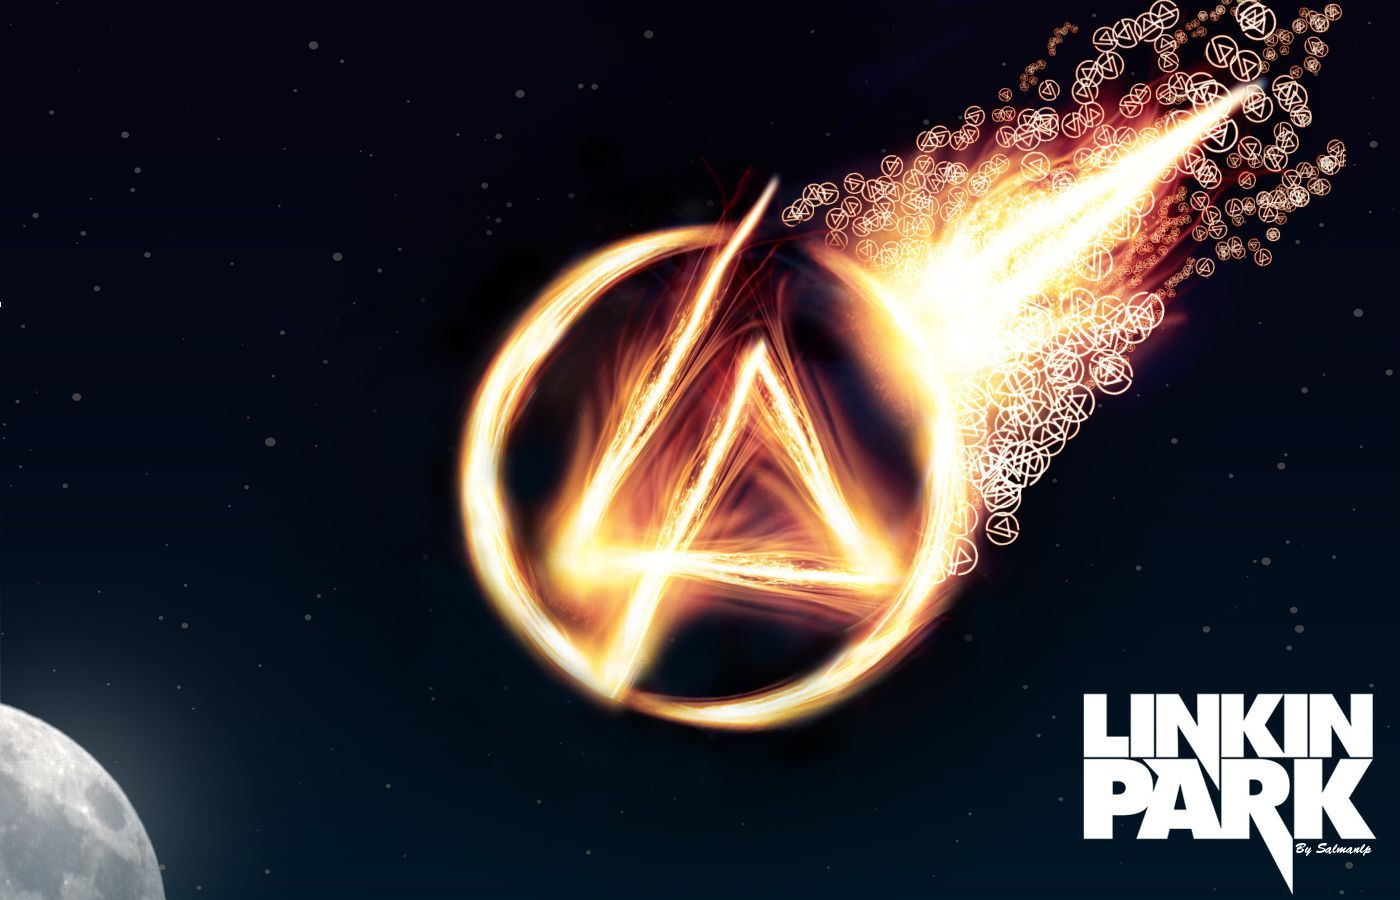 Linkin Park Logo 2016 Hdq Cover